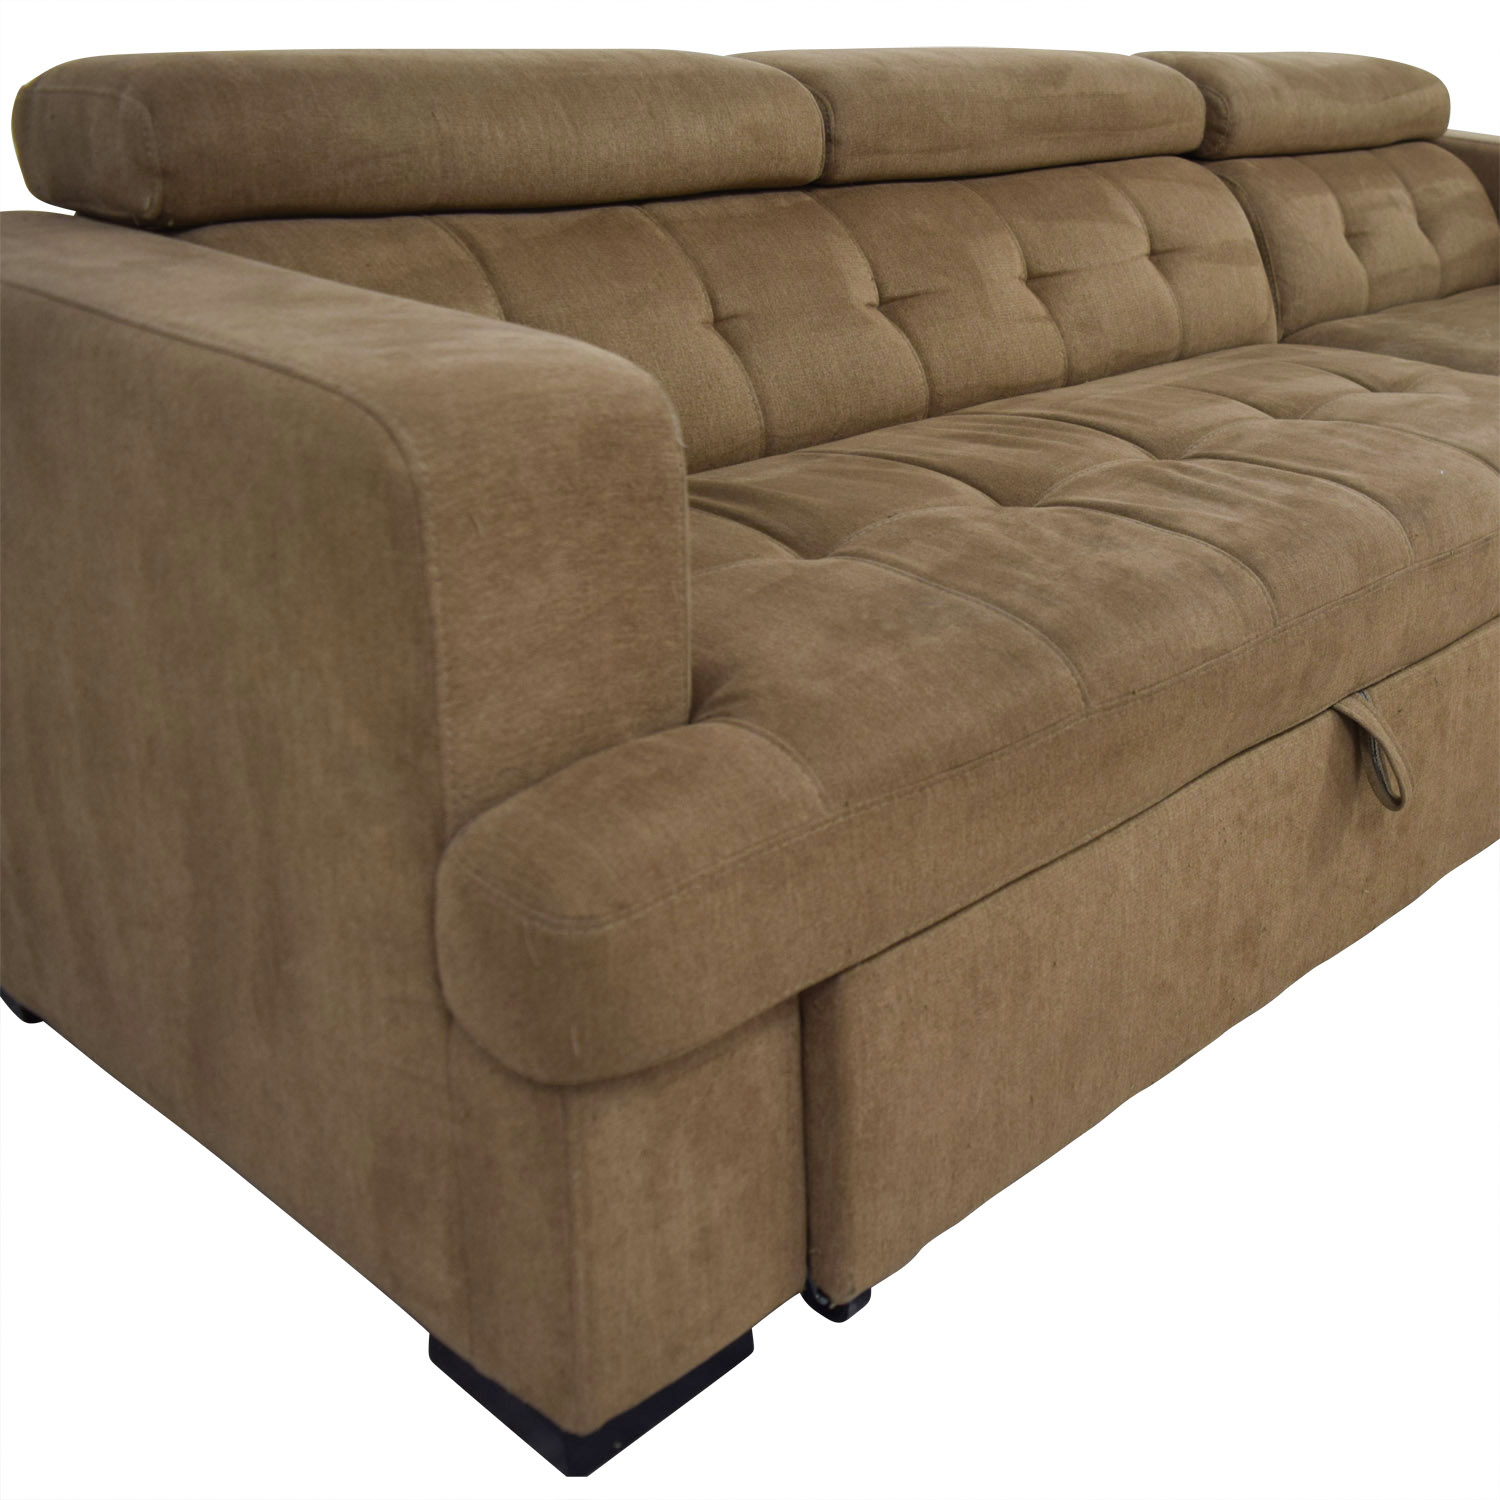 40 Off Bob S Discount Furniture Bob S Furniture Brown Pull Out With Chaise Storage Sofas